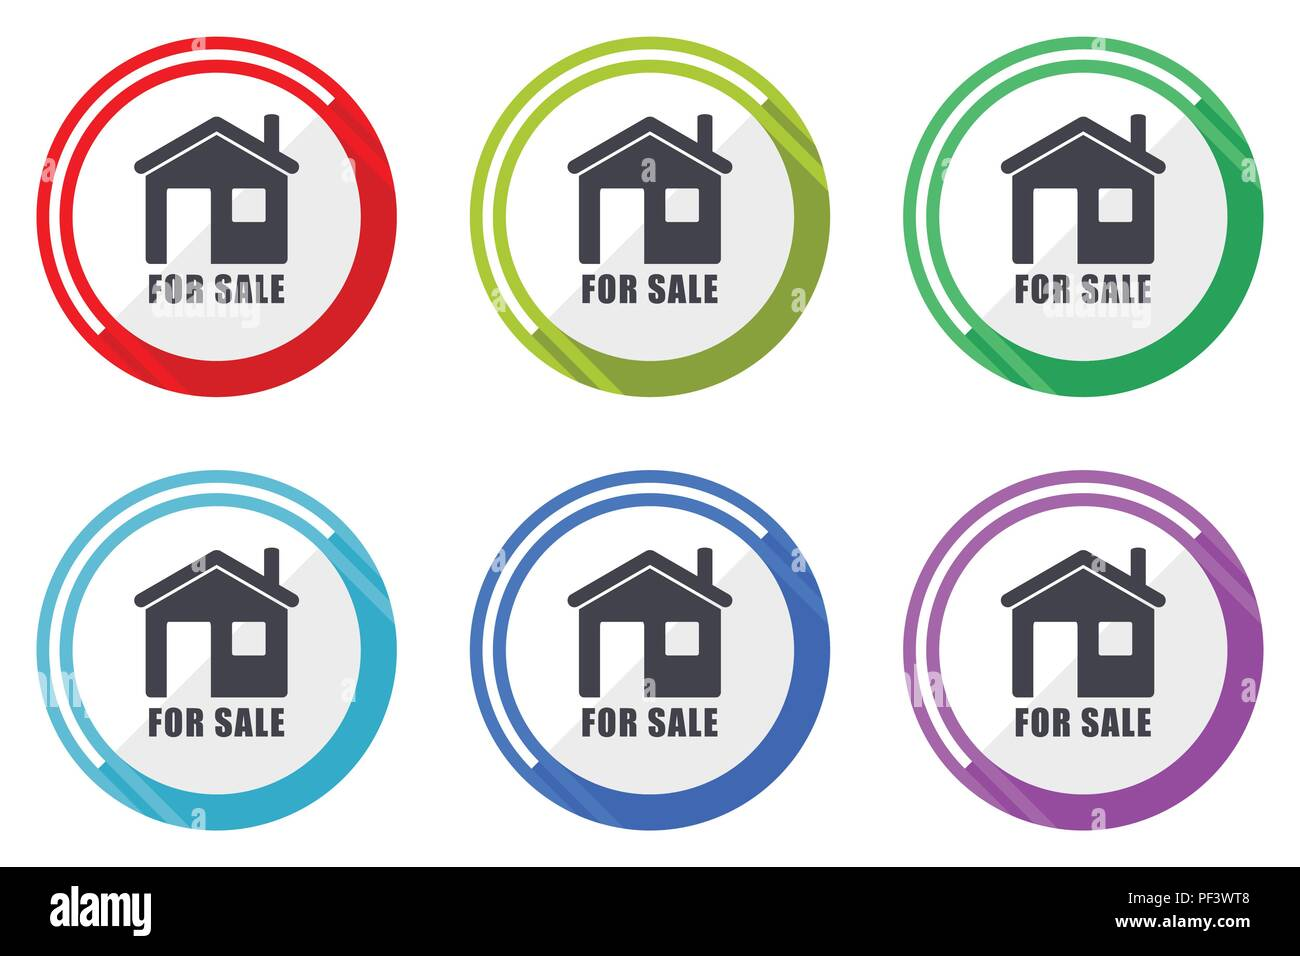 For sale editable flat vector icons collection, round circle web buttons, set of colorful computer and smartphone application signs easy to edit - Stock Image